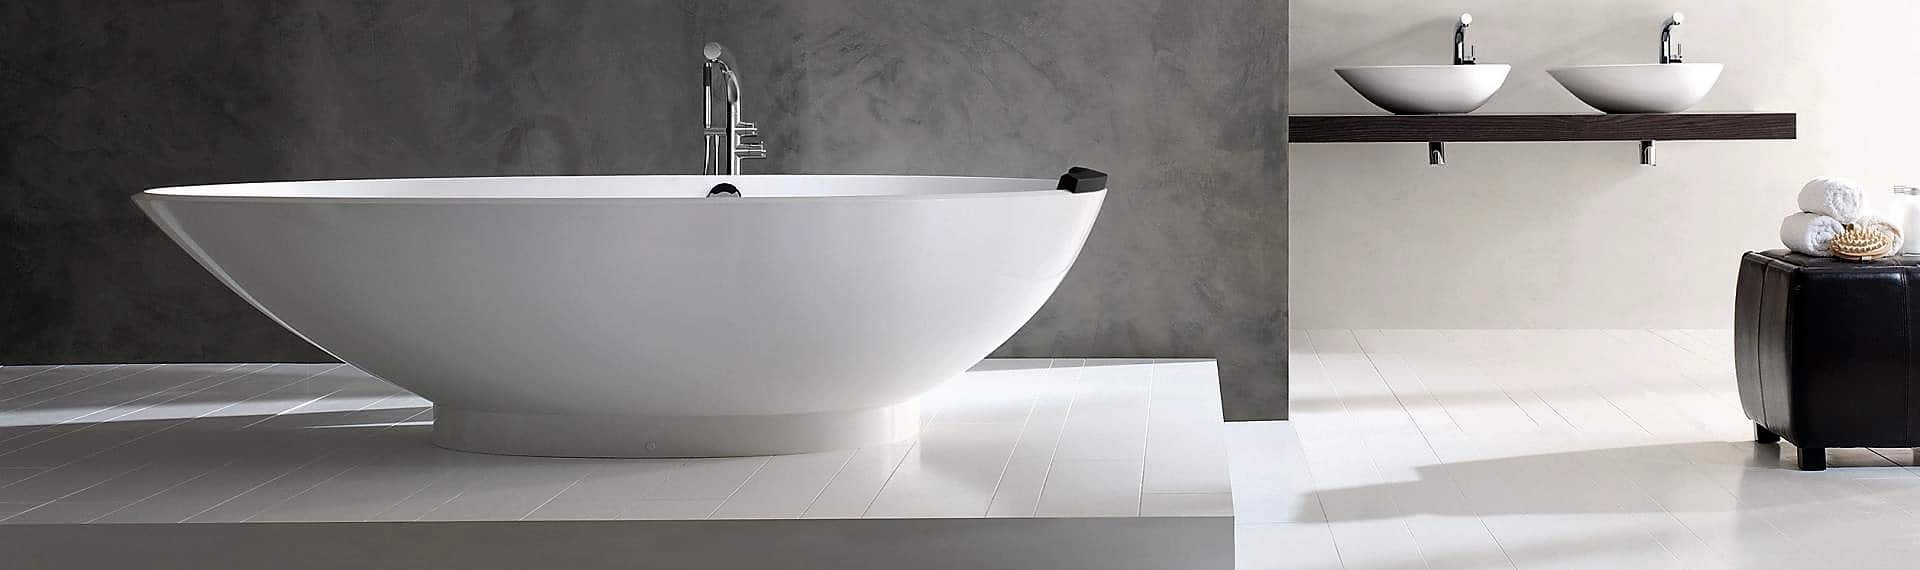 8 Best Freestanding Tubs (Sept. 2018) – Reviews & Buying Guide